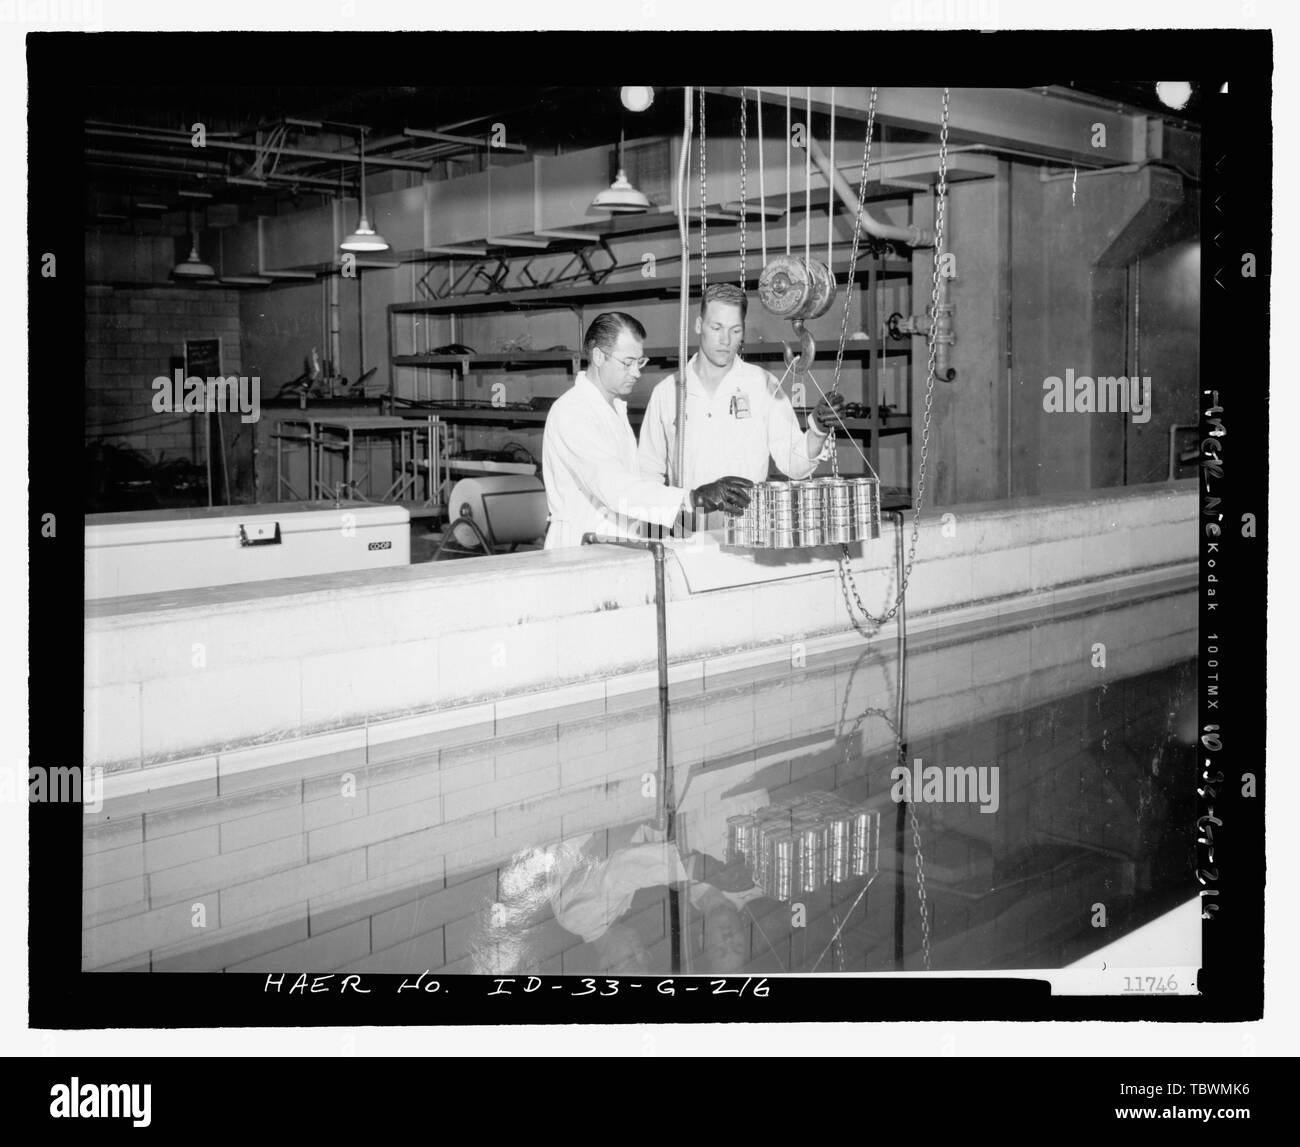 MTR BASEMENT. WORKERS (DON ALVORD AND CYRIL VAN ORDEN OF PHILLIPS PETROLEUM CO.) POSE FOR GAMMA IRRADIATION EXPERIMENT IN MTR CANAL. CANS OF FOOD WILL BE LOWERED TO CANAL BOTTOM, WHERE SPENT MTR FUEL ELEMENTS EMIT GAMMA RADIATION. INL NEGATIVE NO. 11746. Unknown Photographer, 8201954  Idaho National Engineering Laboratory, Test Reactor Area, Materials and Engineering Test Reactors, Scoville, Butte County, ID - Stock Image